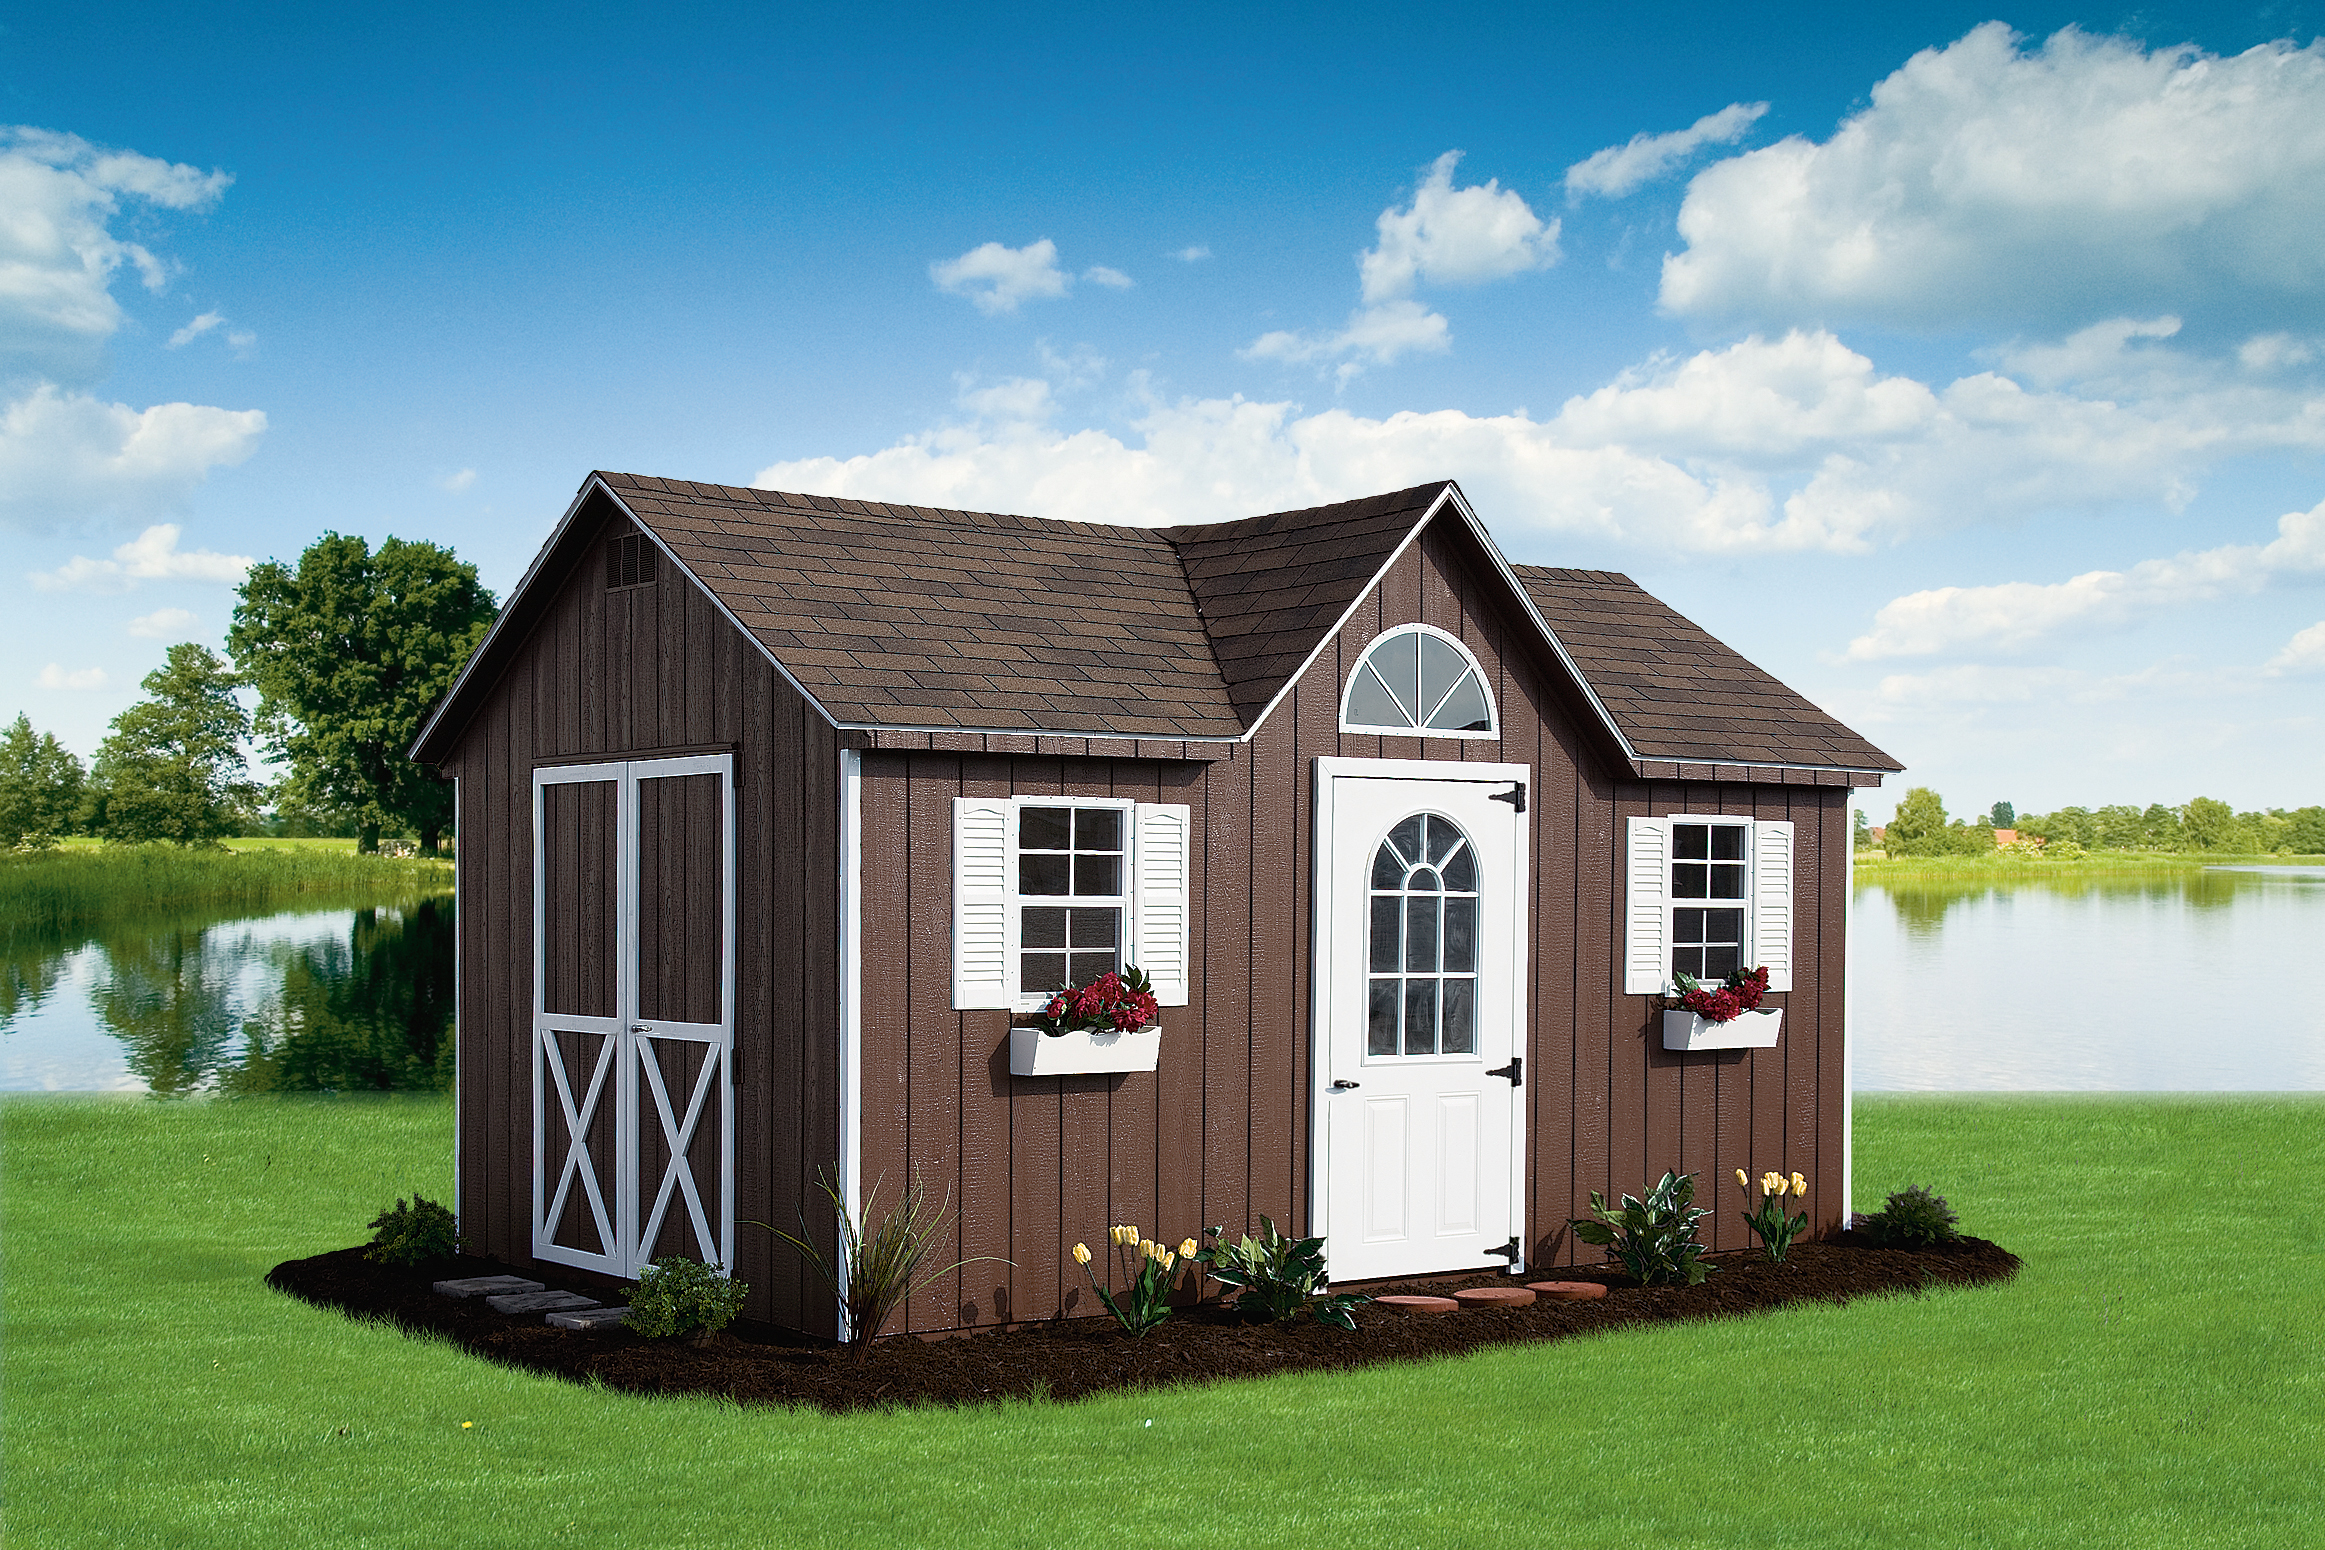 Dormer Shed 10 X 16 With Flower Boxes And Round Window Champion Lawn Ornaments Gifts Champion Pa